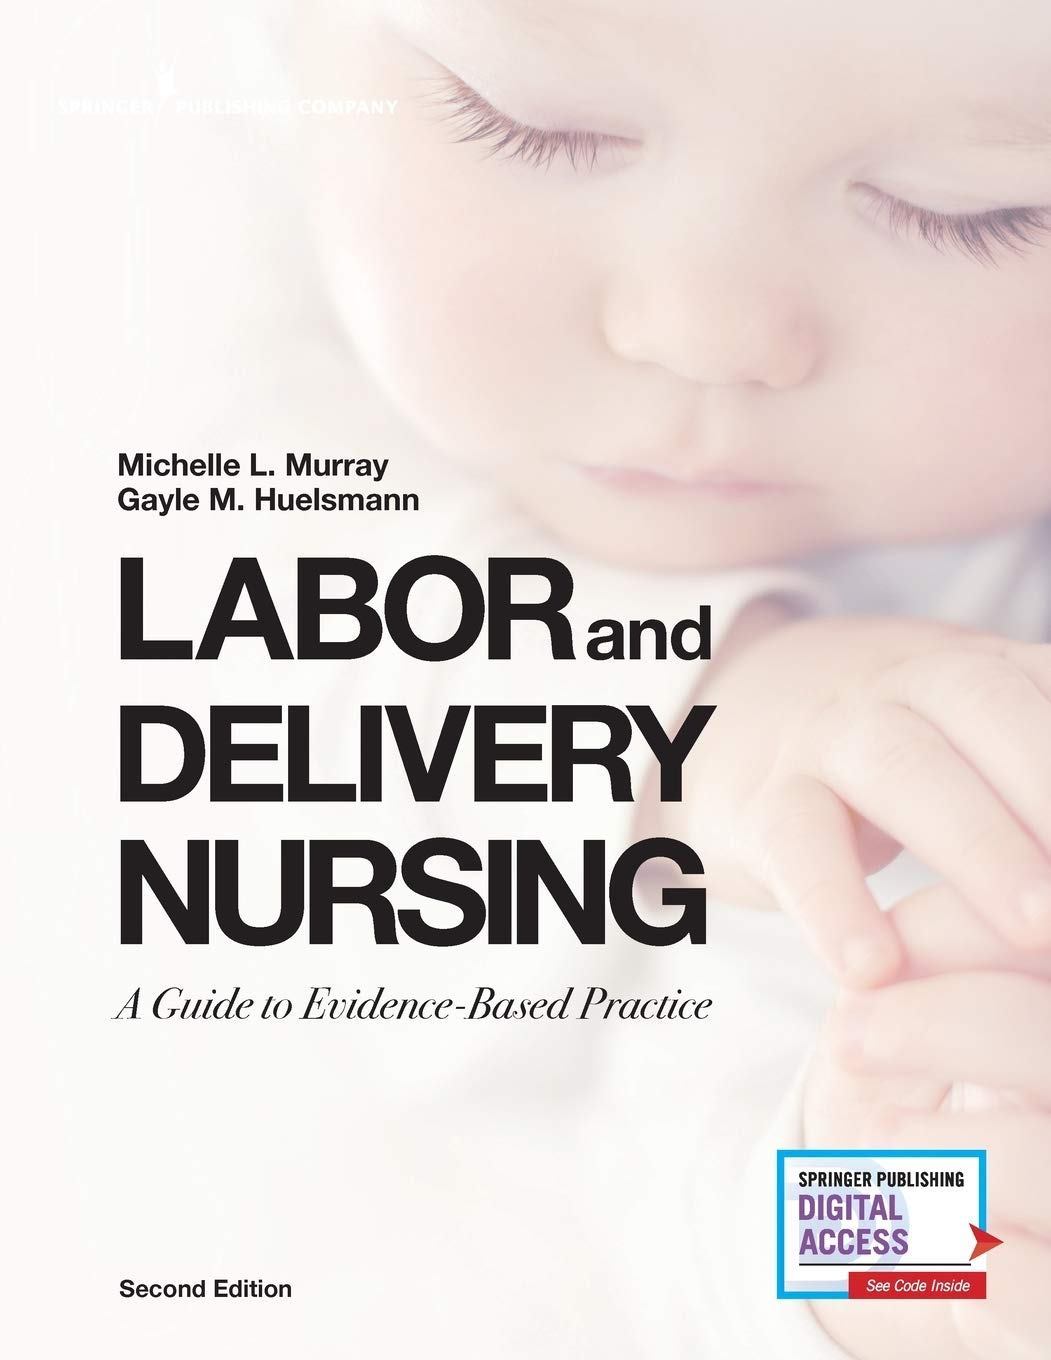 Labor and Delivery Nursing, Second Edition: A Guide to Evidence-Based Practice